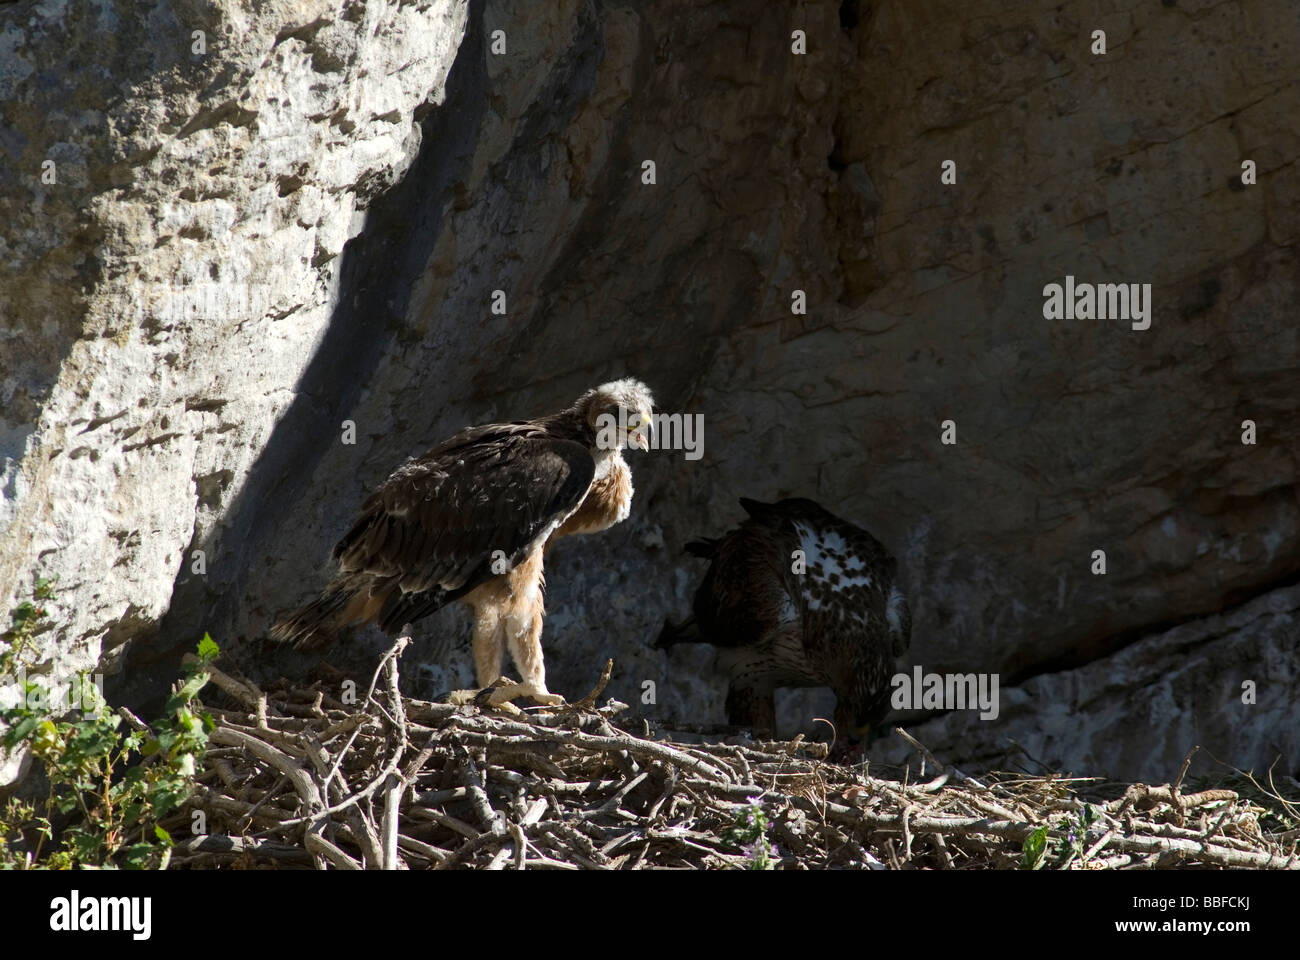 Bonelli's Eagle chick standing on edge of nest while adult feeds in the shadows Stock Photo